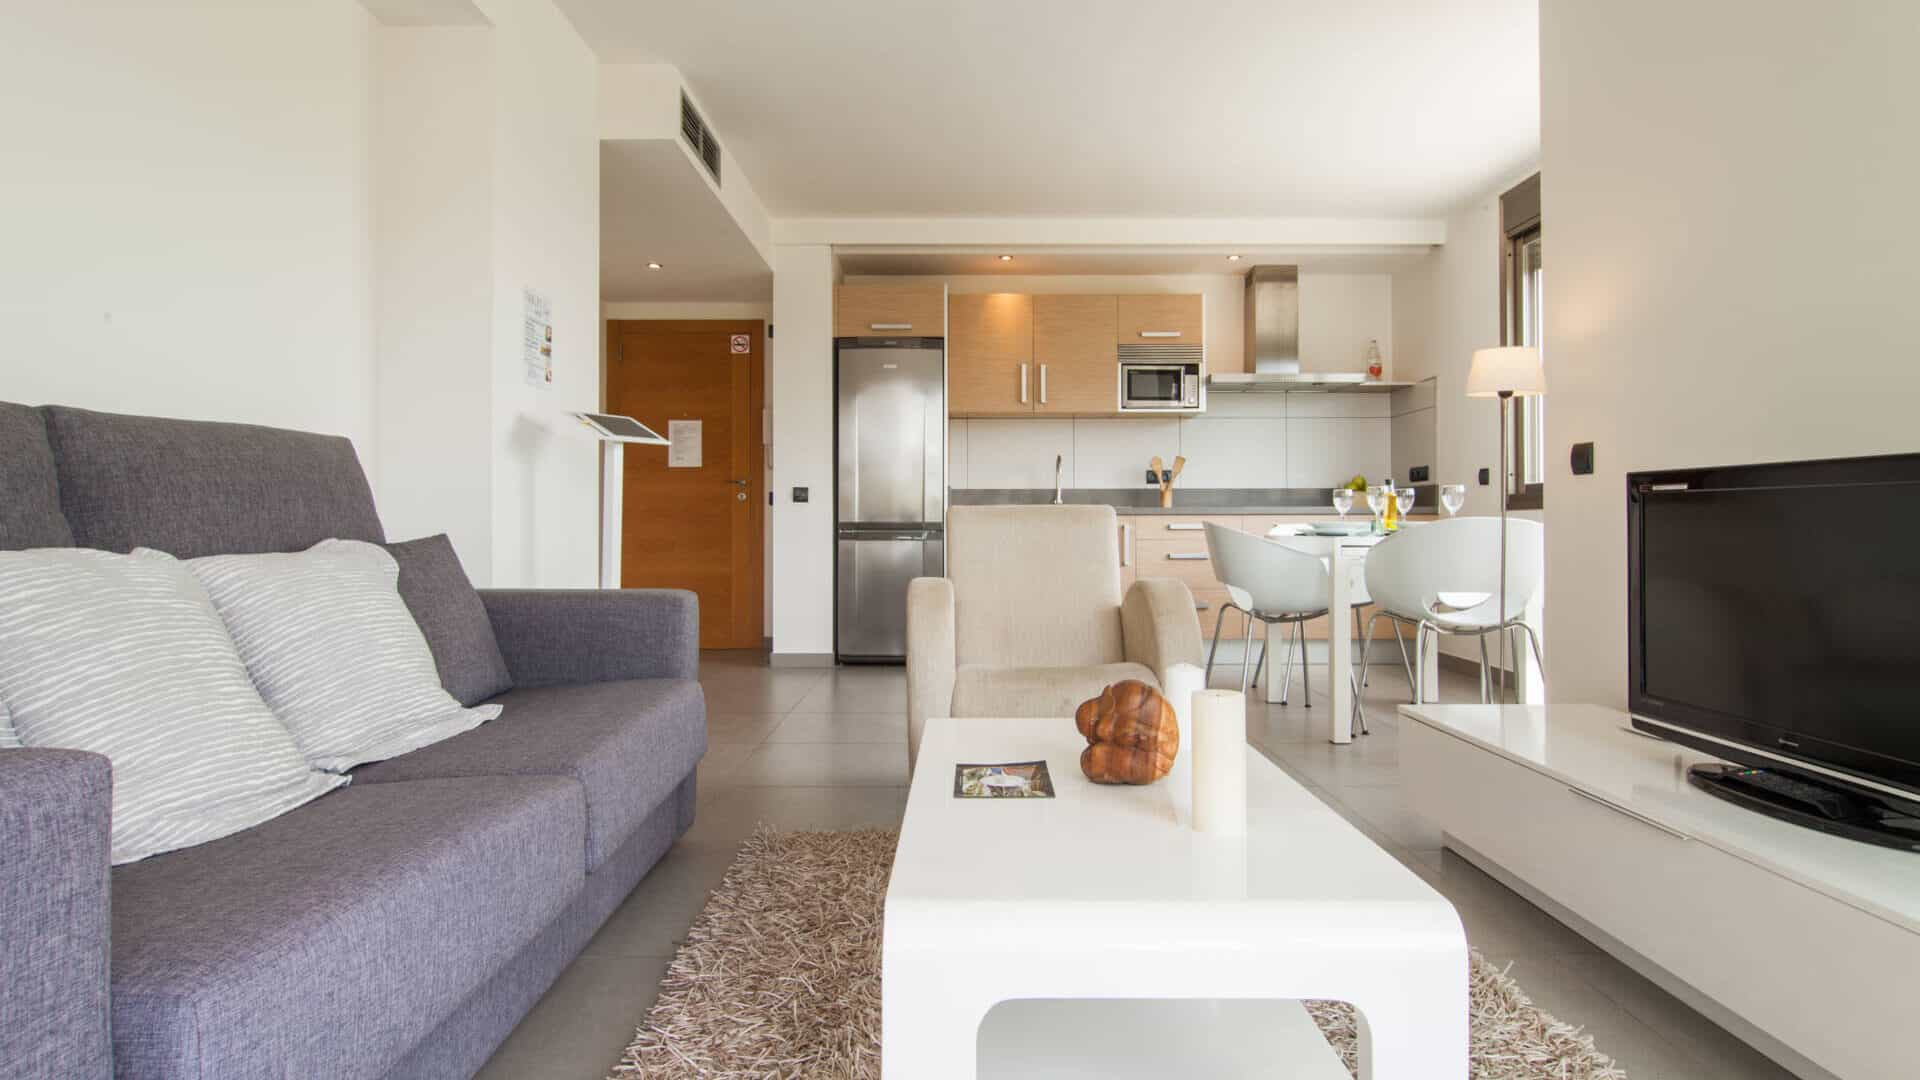 3.1.A : 2 bedrom 2 bathroom apartment with huge terrace for rent